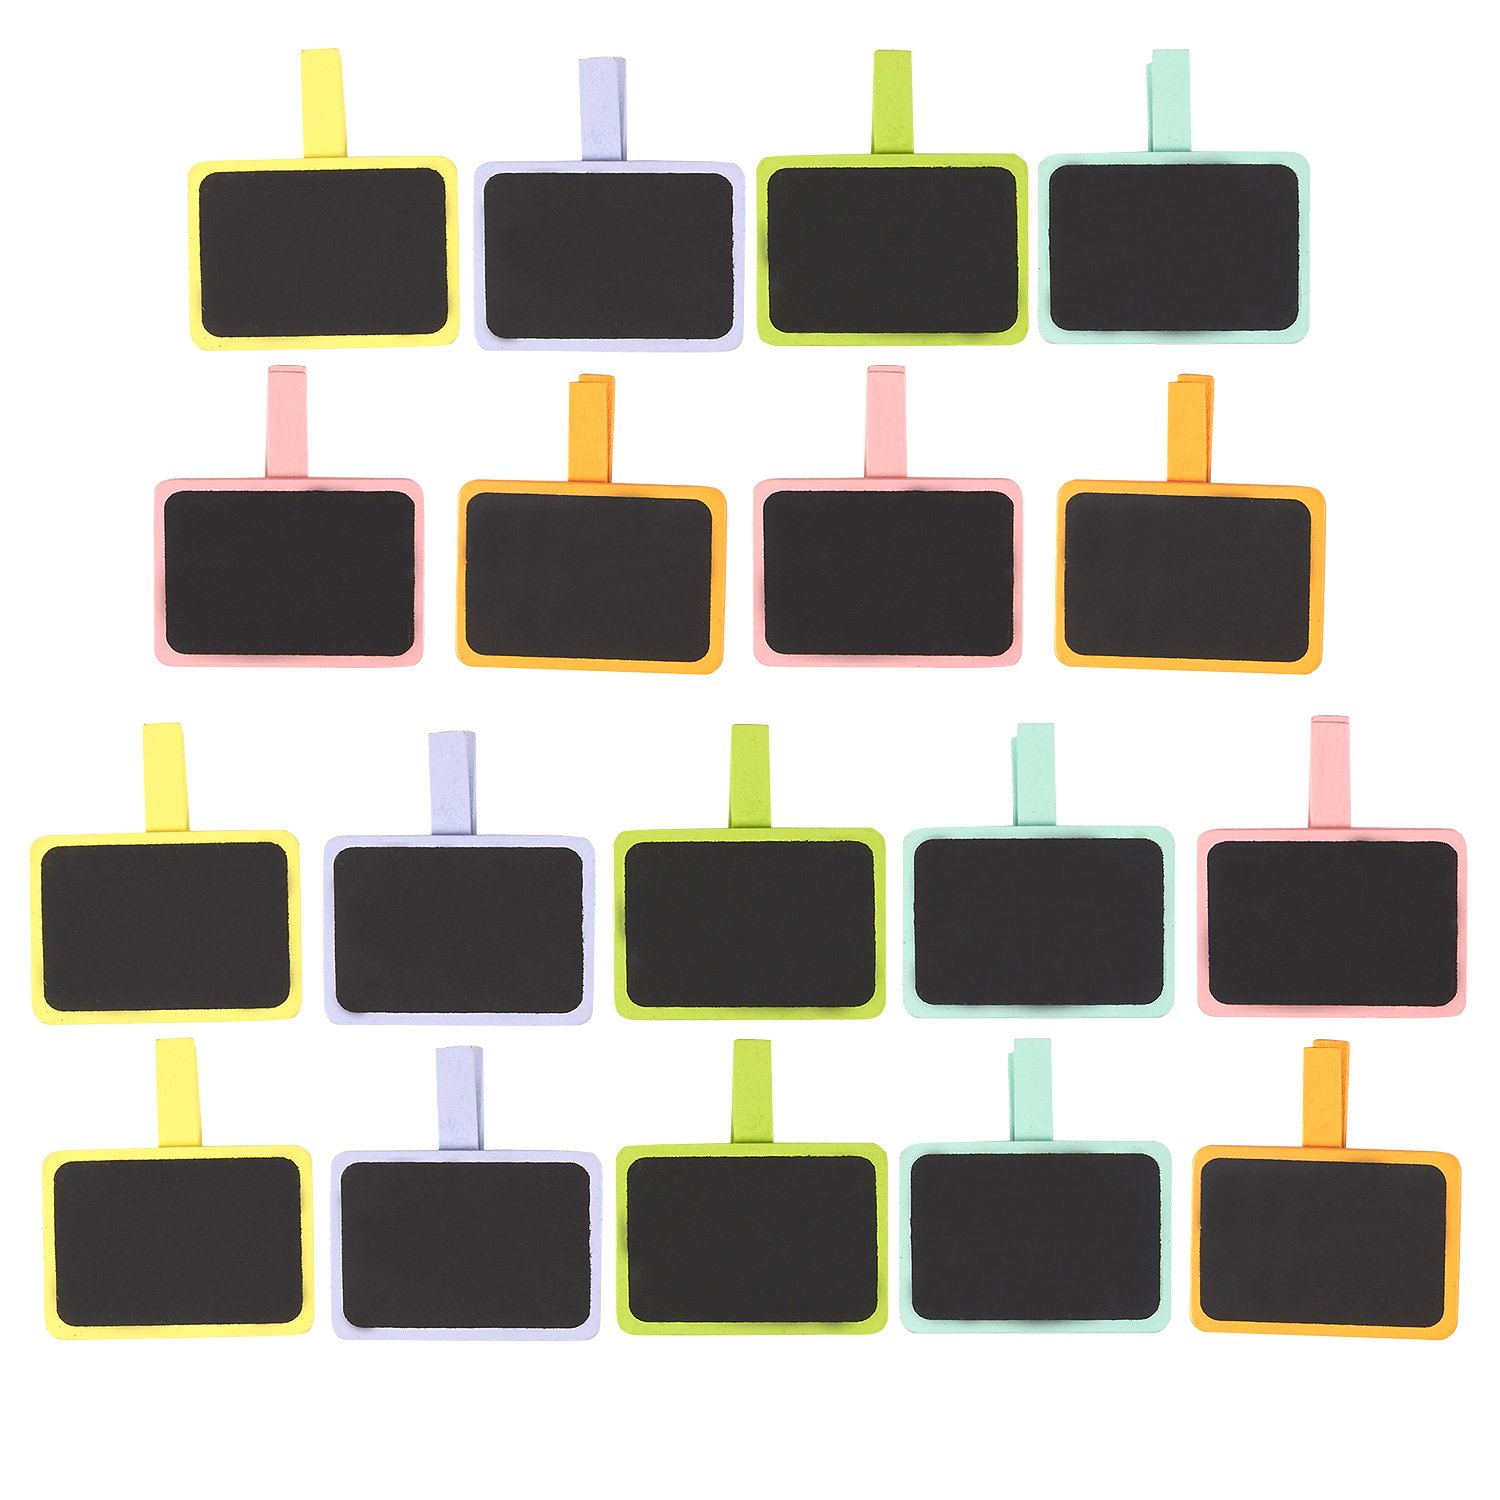 Mini Chalkboard Clips – 18-Pack Wooden Chalkboard Tags, Chalk Board Sign with Clothespin Clip, Wooden Clips for Weddings, Table Place Cards, Food Name Labels, 6 Colors, 3 of each, 2.5 x 1.6 Inches Juvale